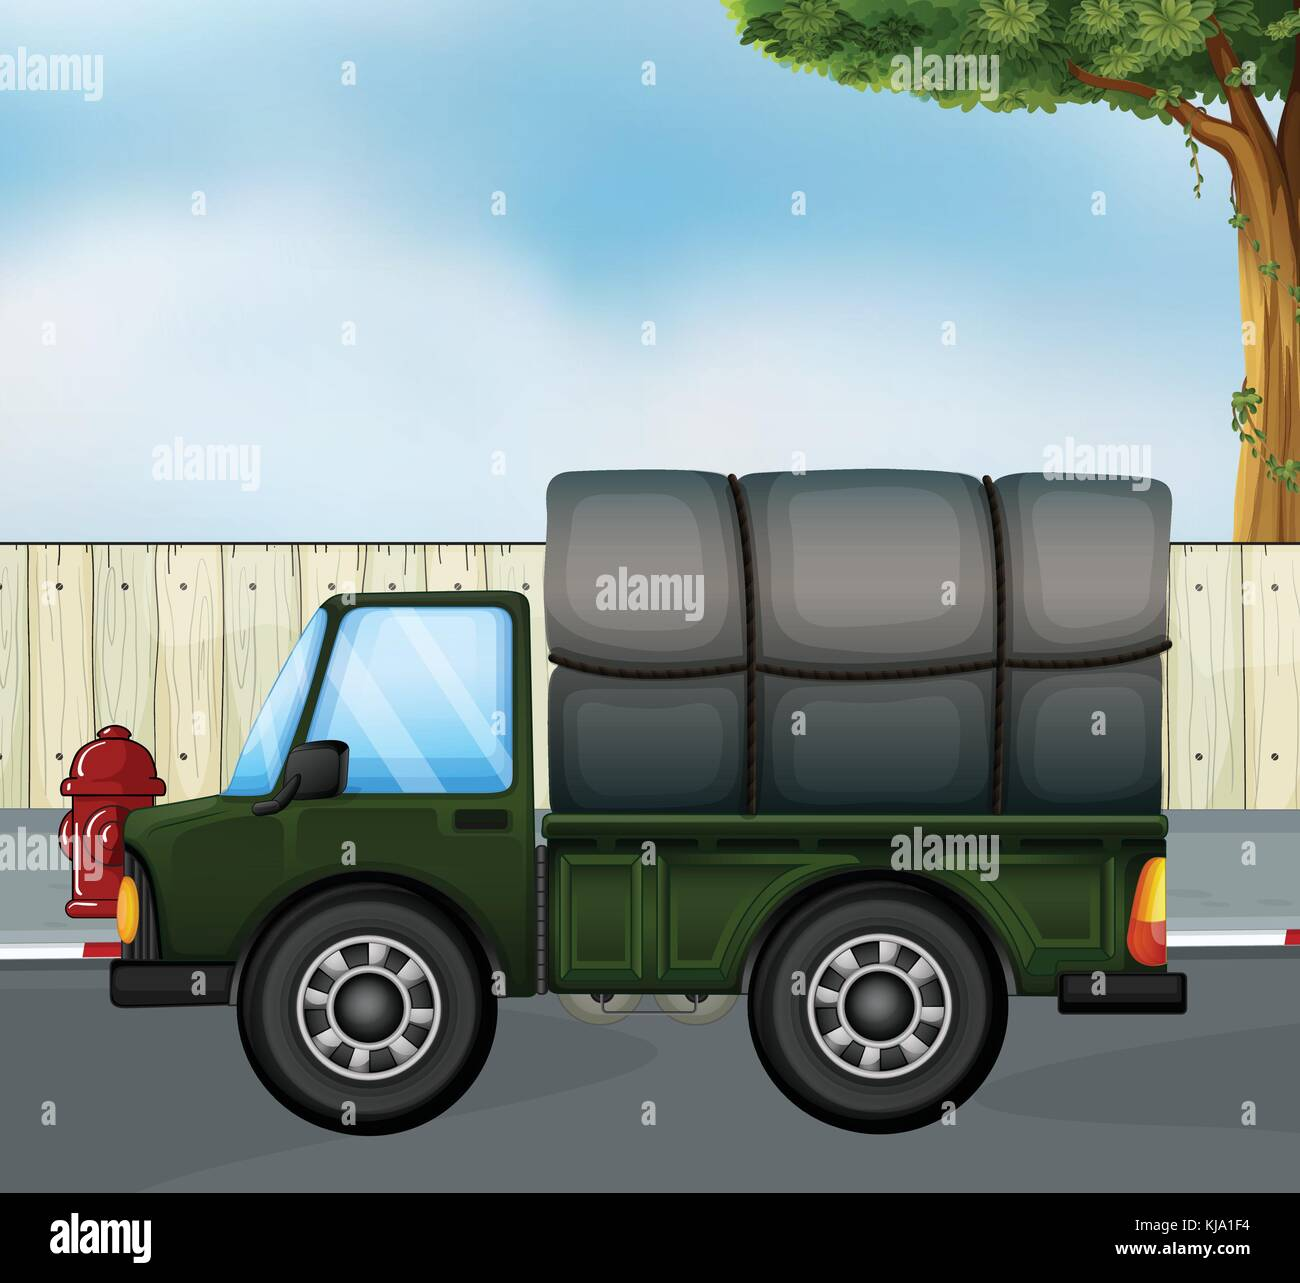 Illustration of a green track with a cargo at the back - Stock Vector